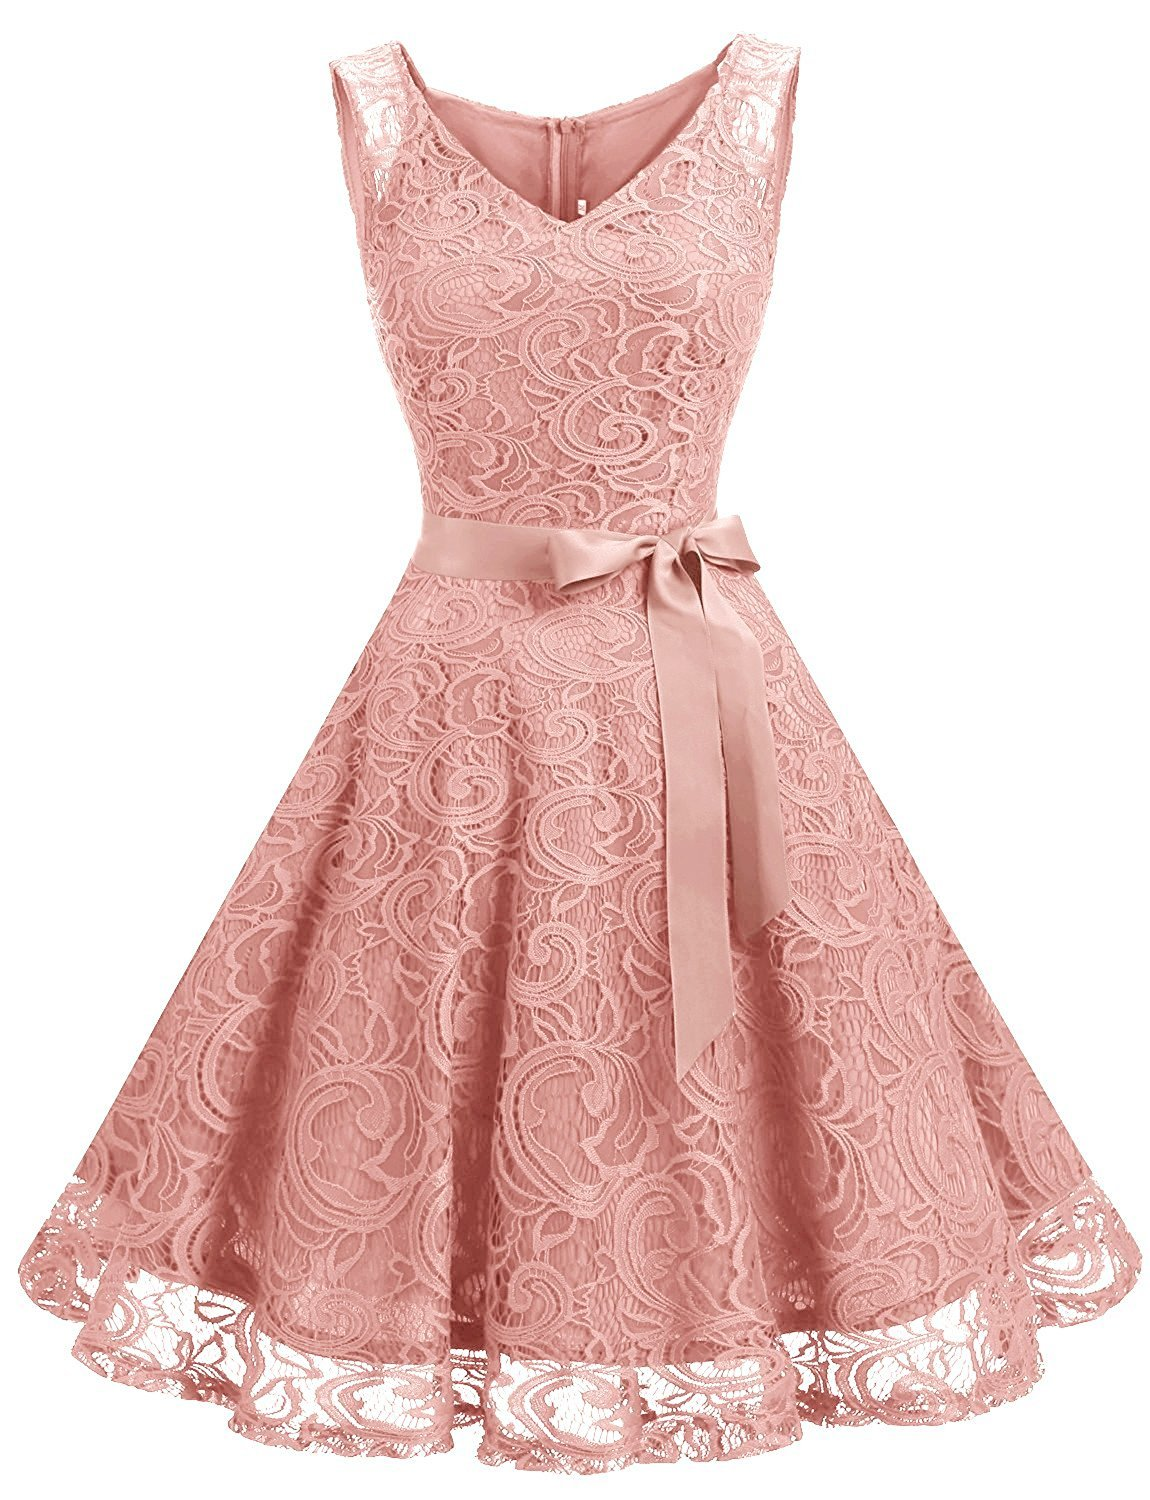 ad5b0d10c31bef This elegant short dress features a sleeveless v-neckline.This dress is  perfect for casual or any special occasion. Fabric   Lace Closure   Zipper  Back ...